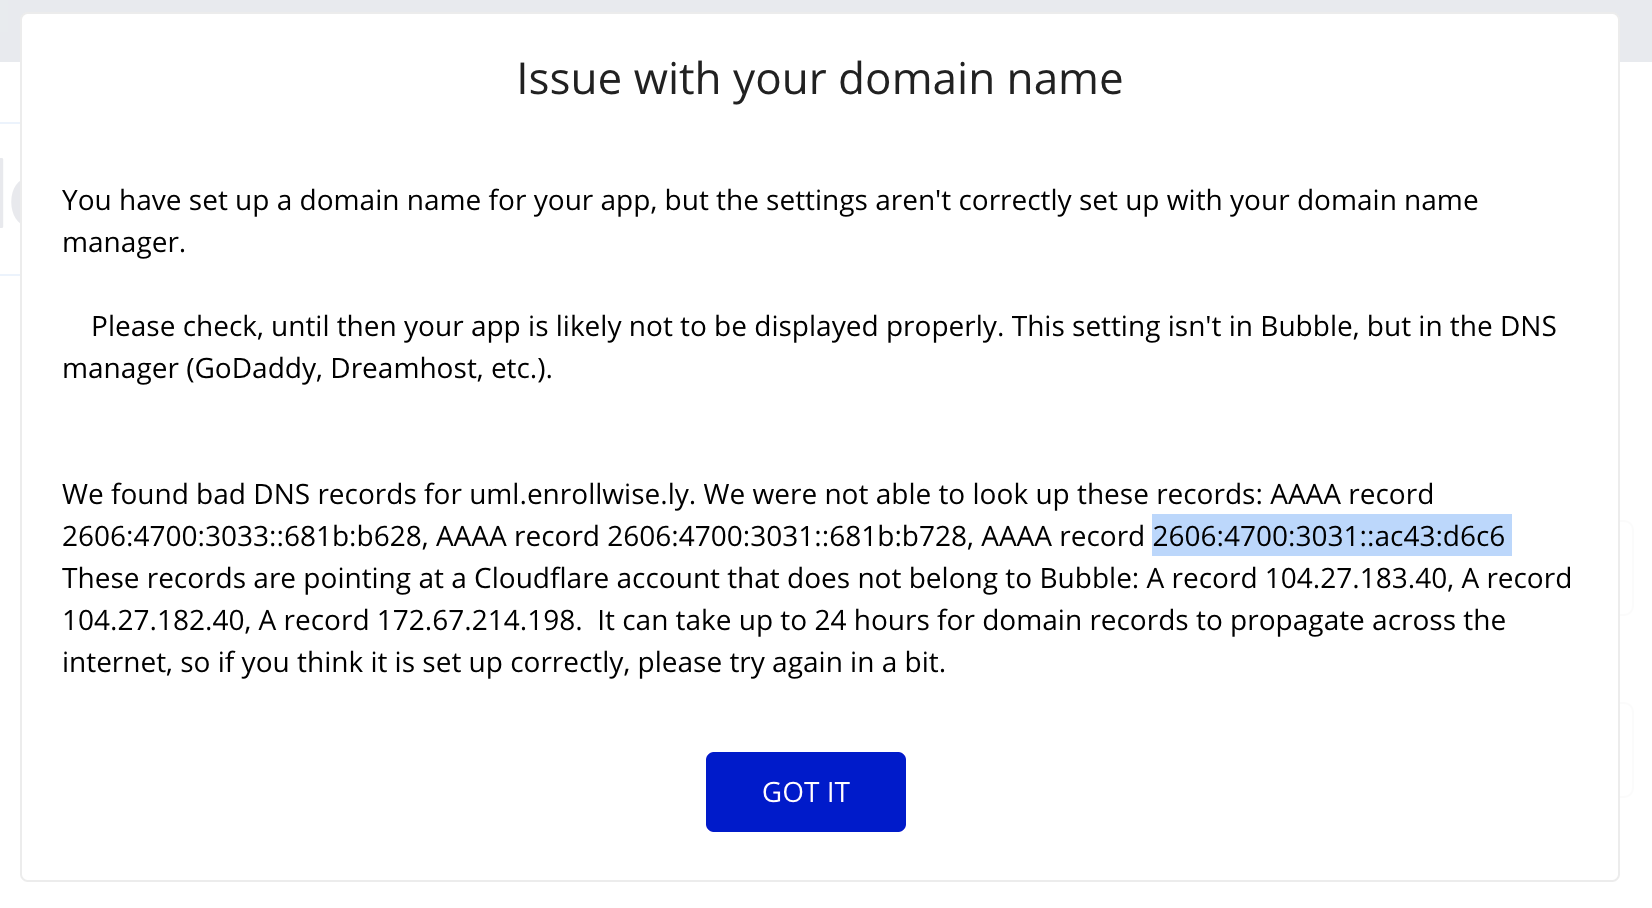 Cloudflare  > Bubble says